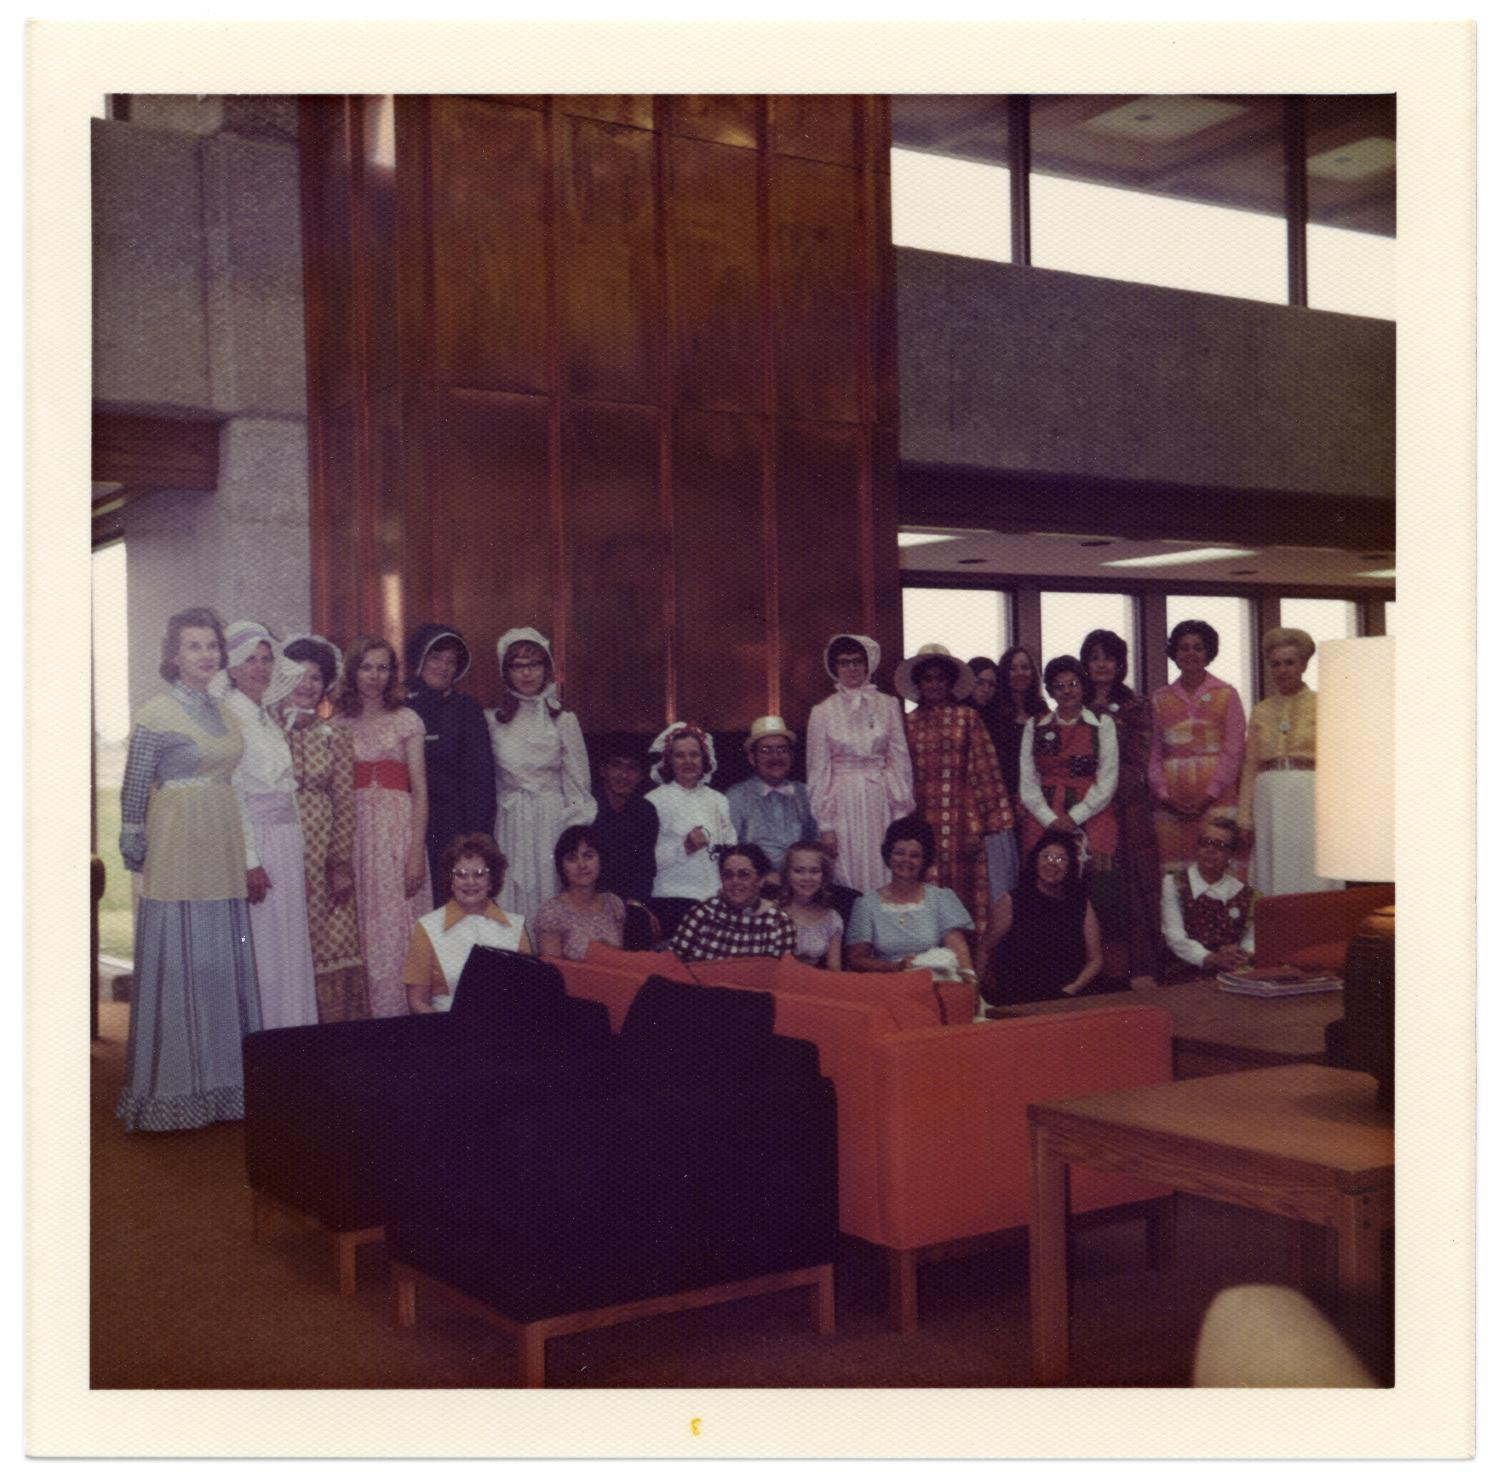 Richardson Centennial Celebration, Photograph of a group of men and women, some dressed in nineteenth-century costume, participating in the Centennial celebration. In front of them, there is a set of furniture. The photograph was taken on the first floor of Richardson Public Library.,